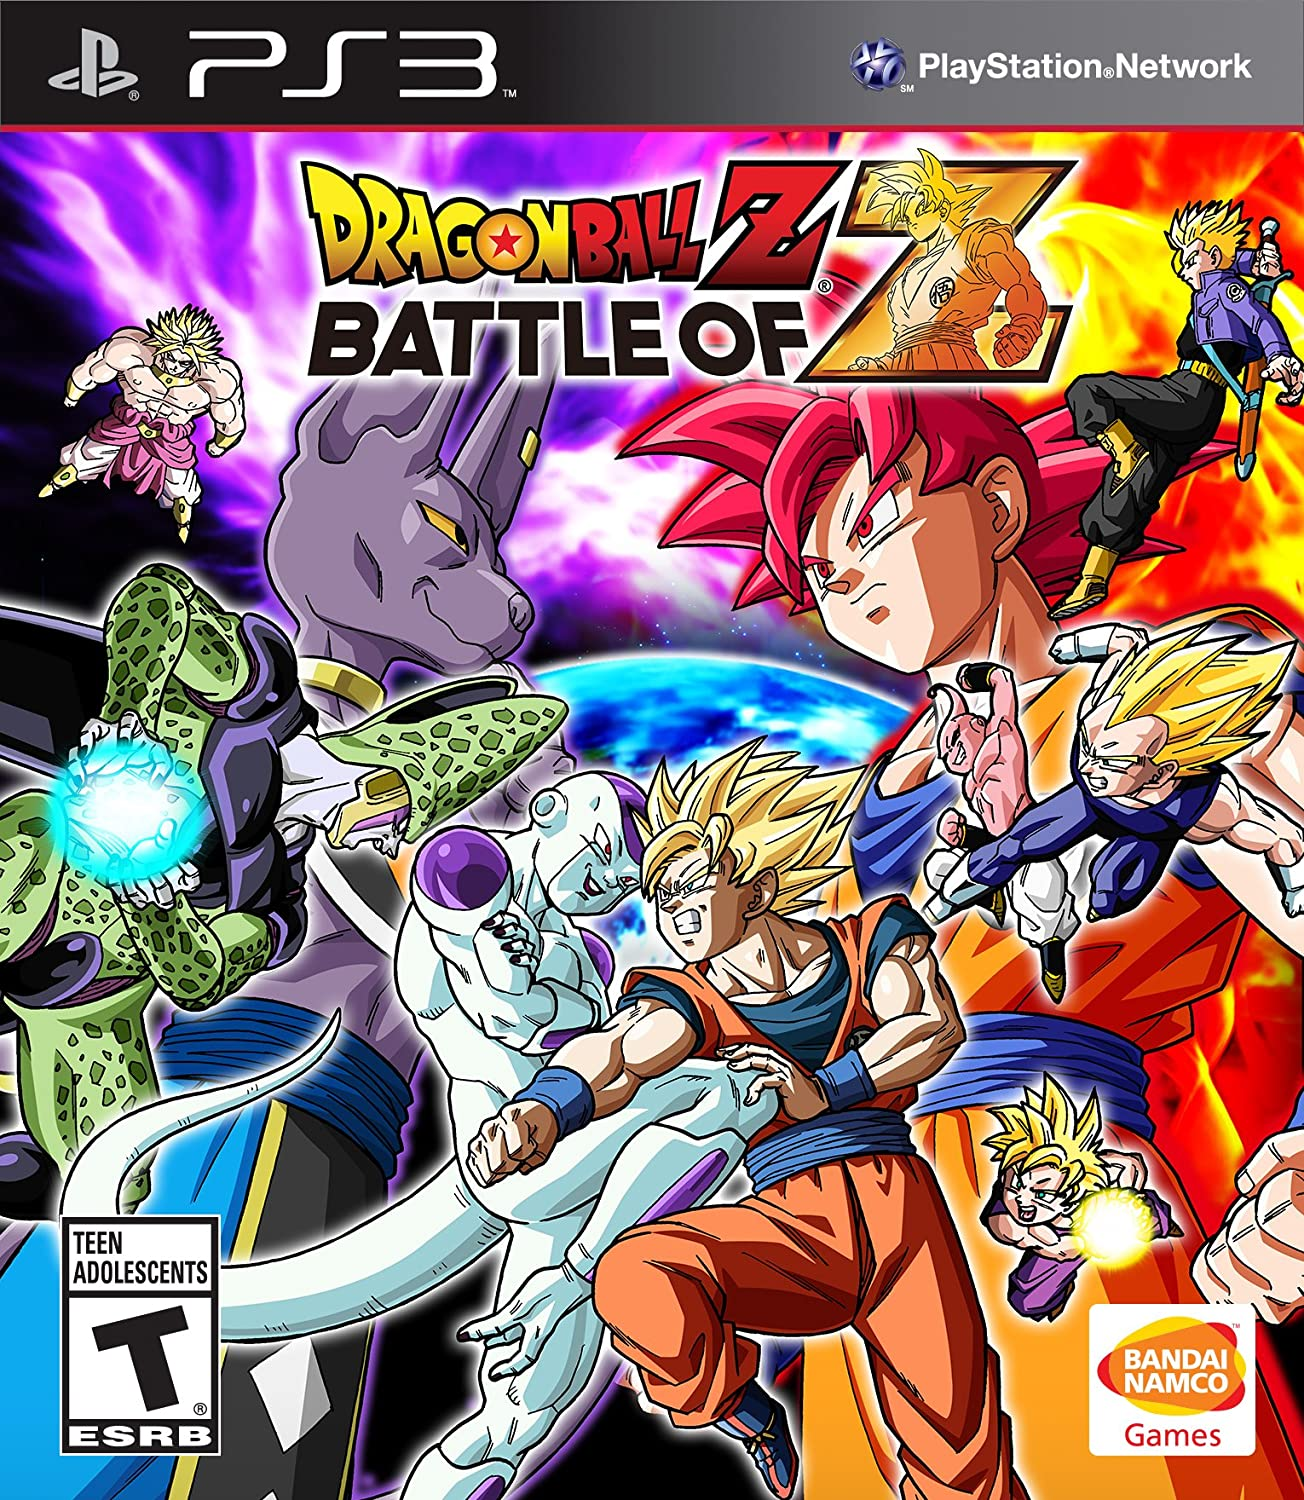 Dragon Ball Department store Z: free shipping Battle of Z - 3 Playstation